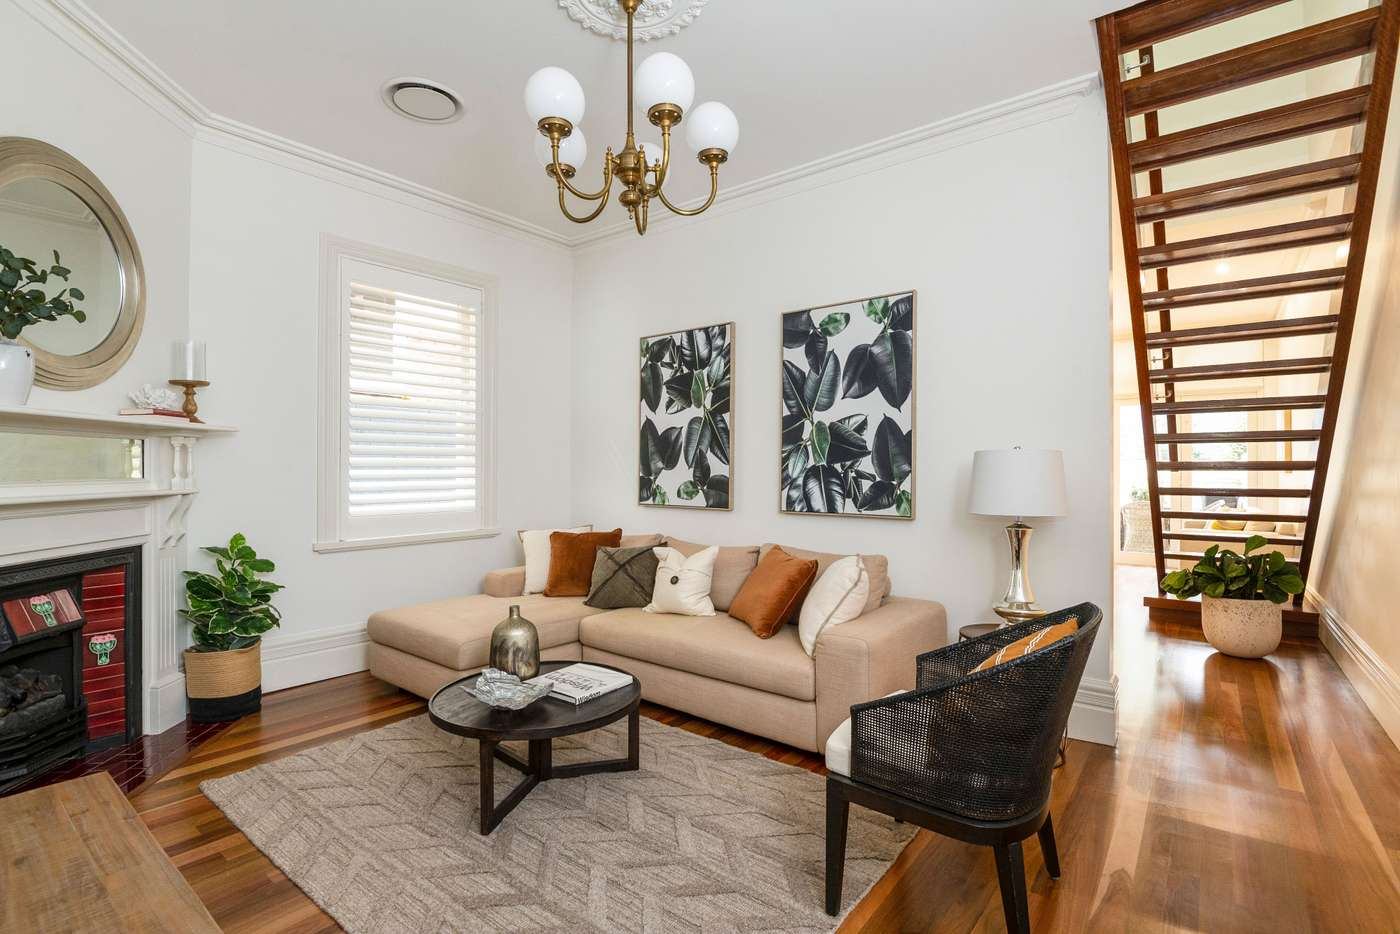 Sixth view of Homely house listing, 14 Dalton Road, Mosman NSW 2088